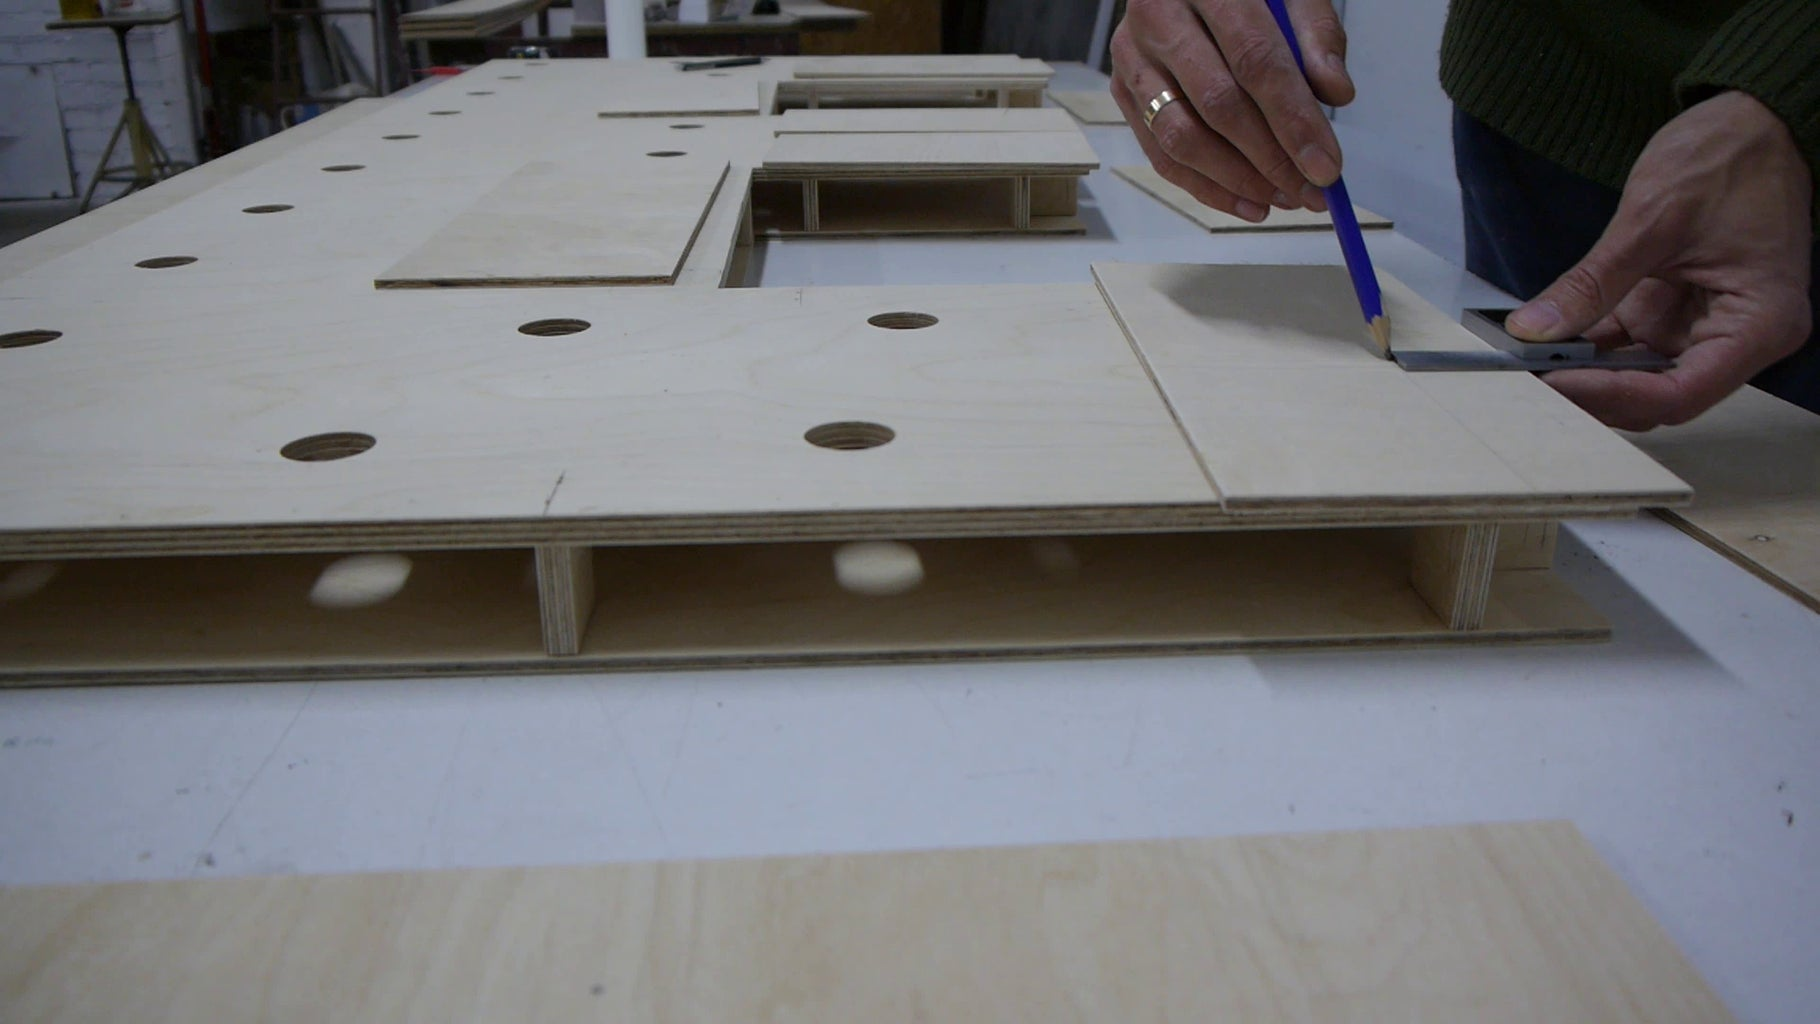 Assembly Main Structure of the Letters